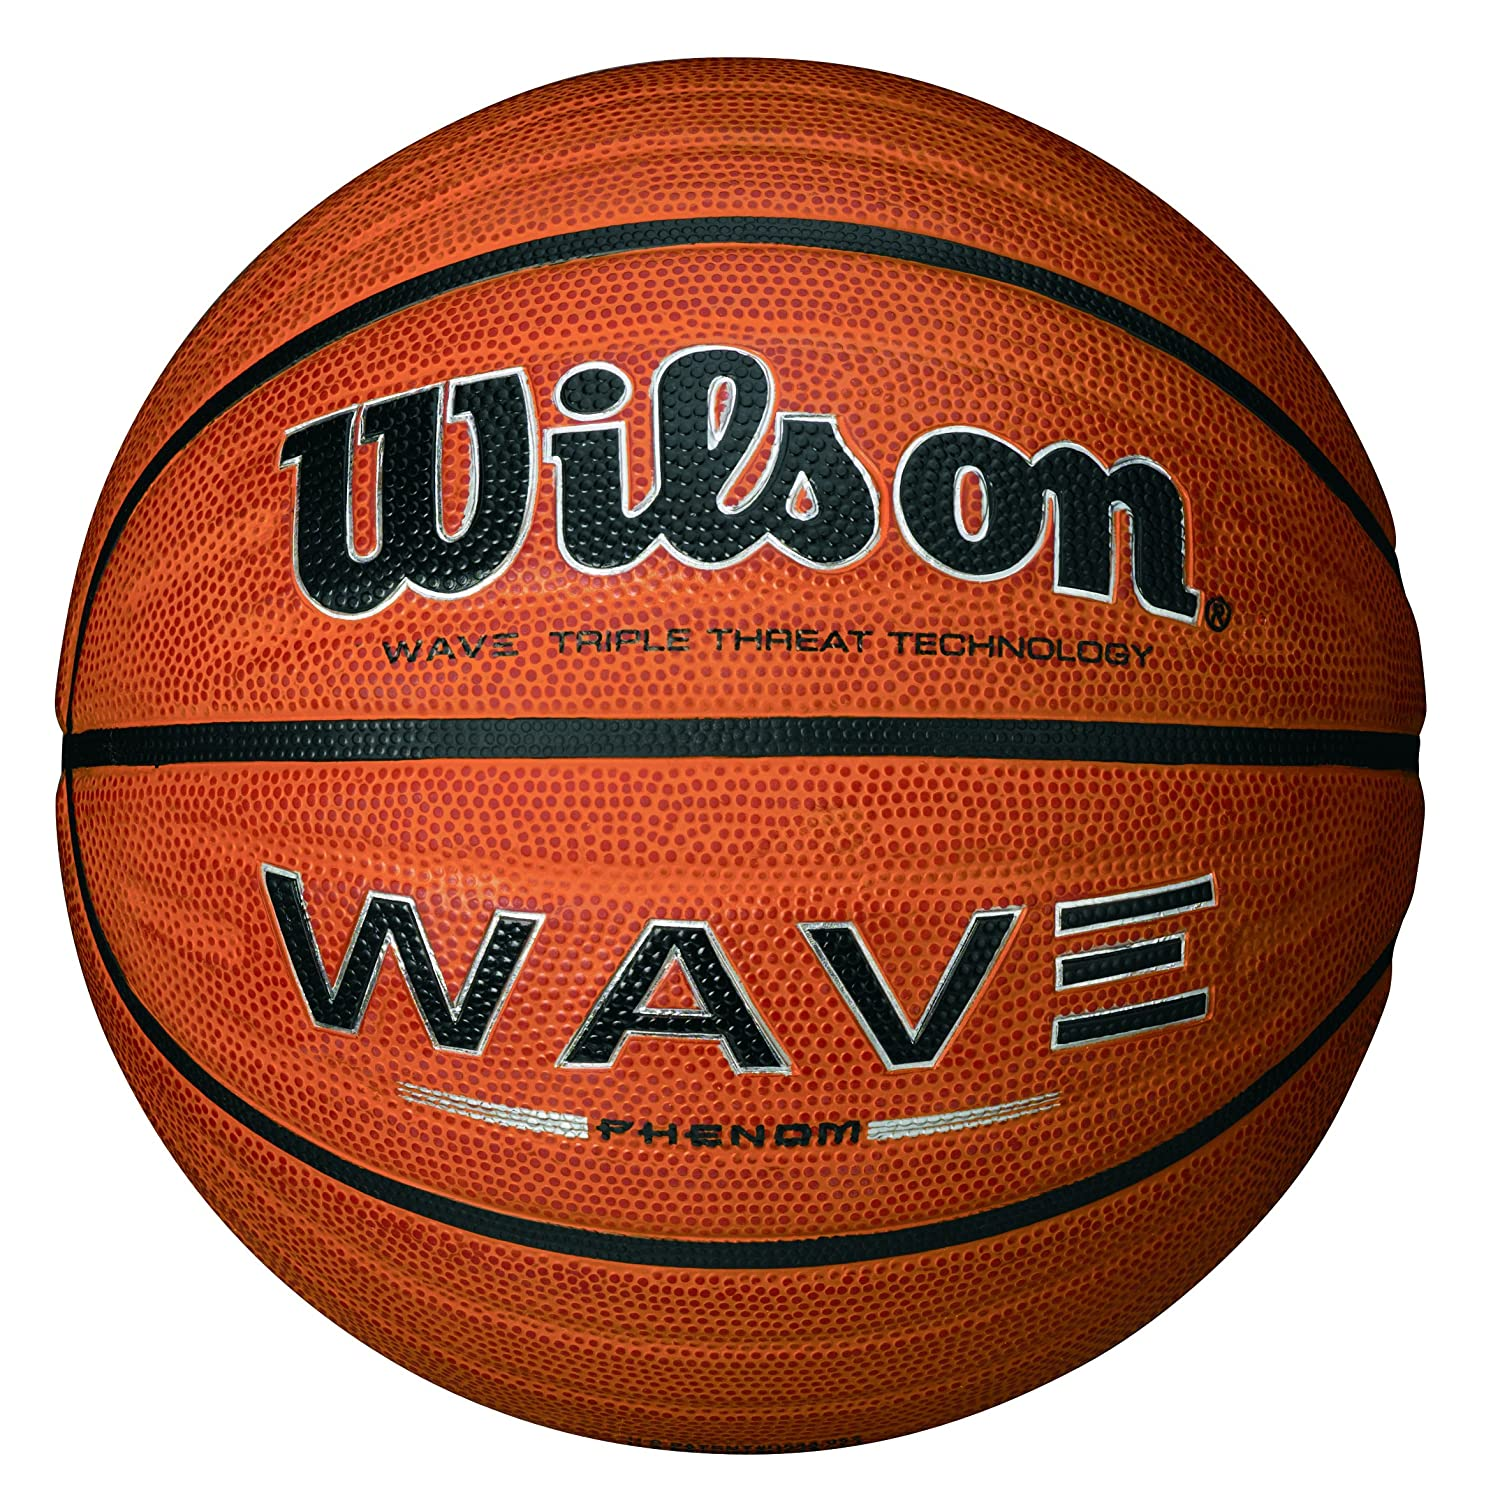 WILSON Wave Phenom Ballon de Basketball Surface Rugueuse Asphalte Granuleuse Sol synthétique